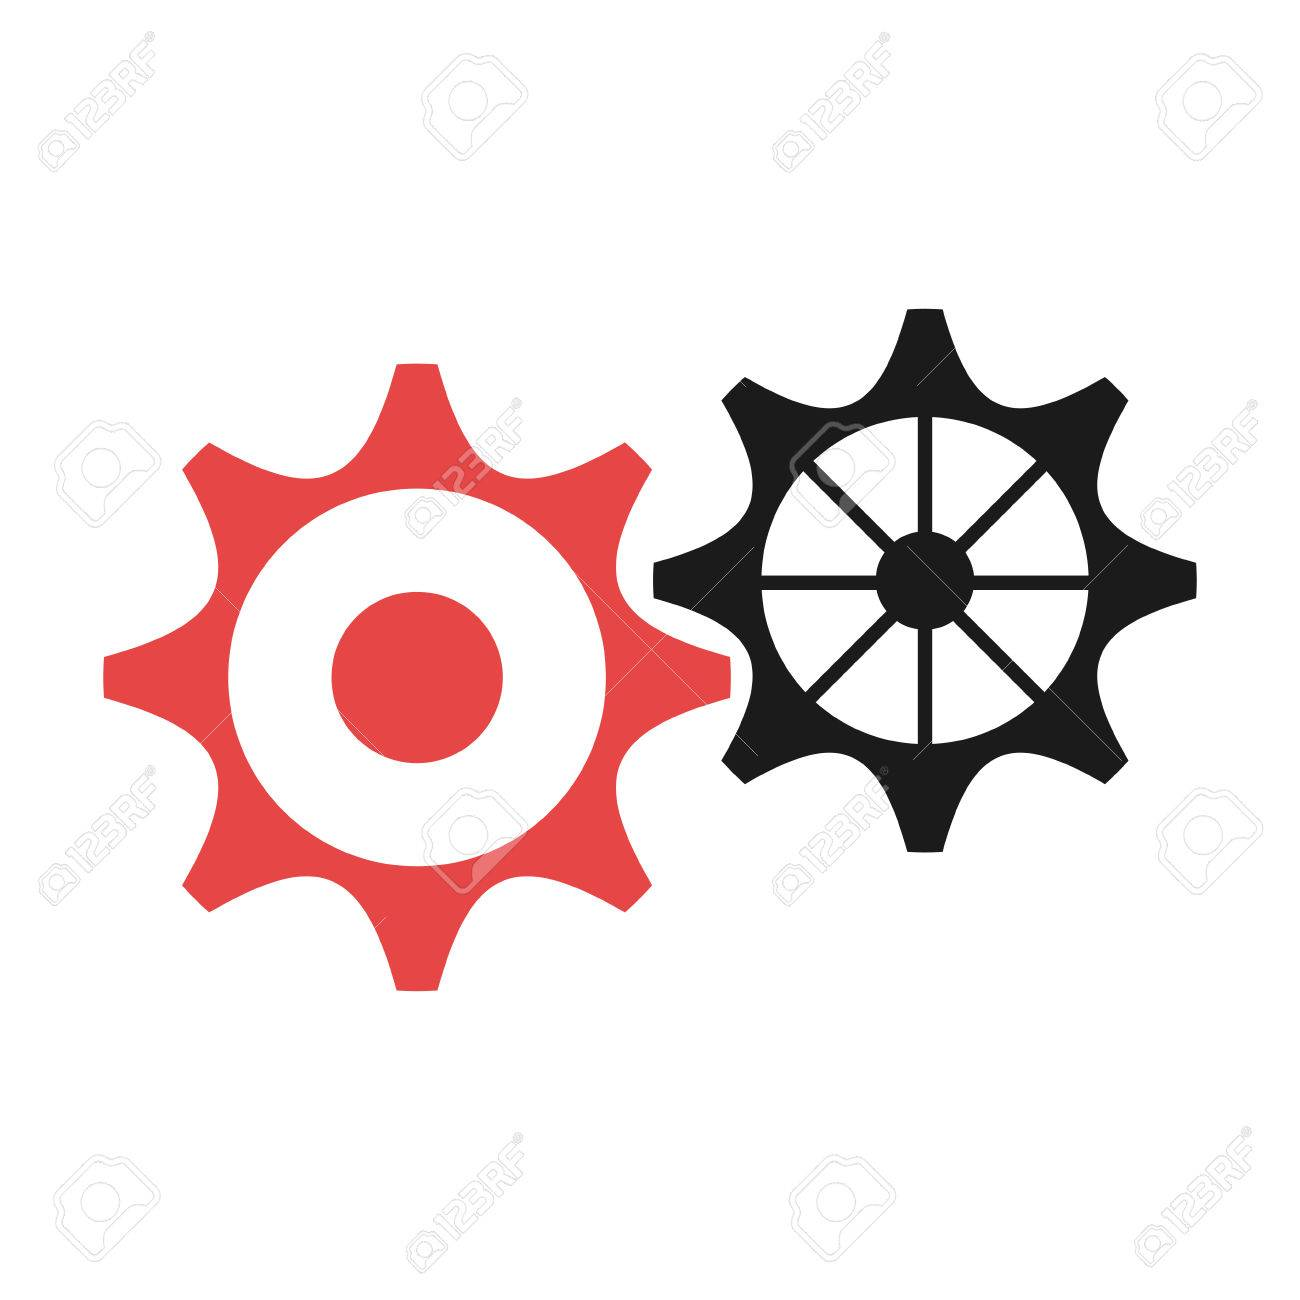 Black And Red Settings Icon Over Isolated Background Vector Royalty Free Cliparts Vectors And Stock Illustration Image 59262832